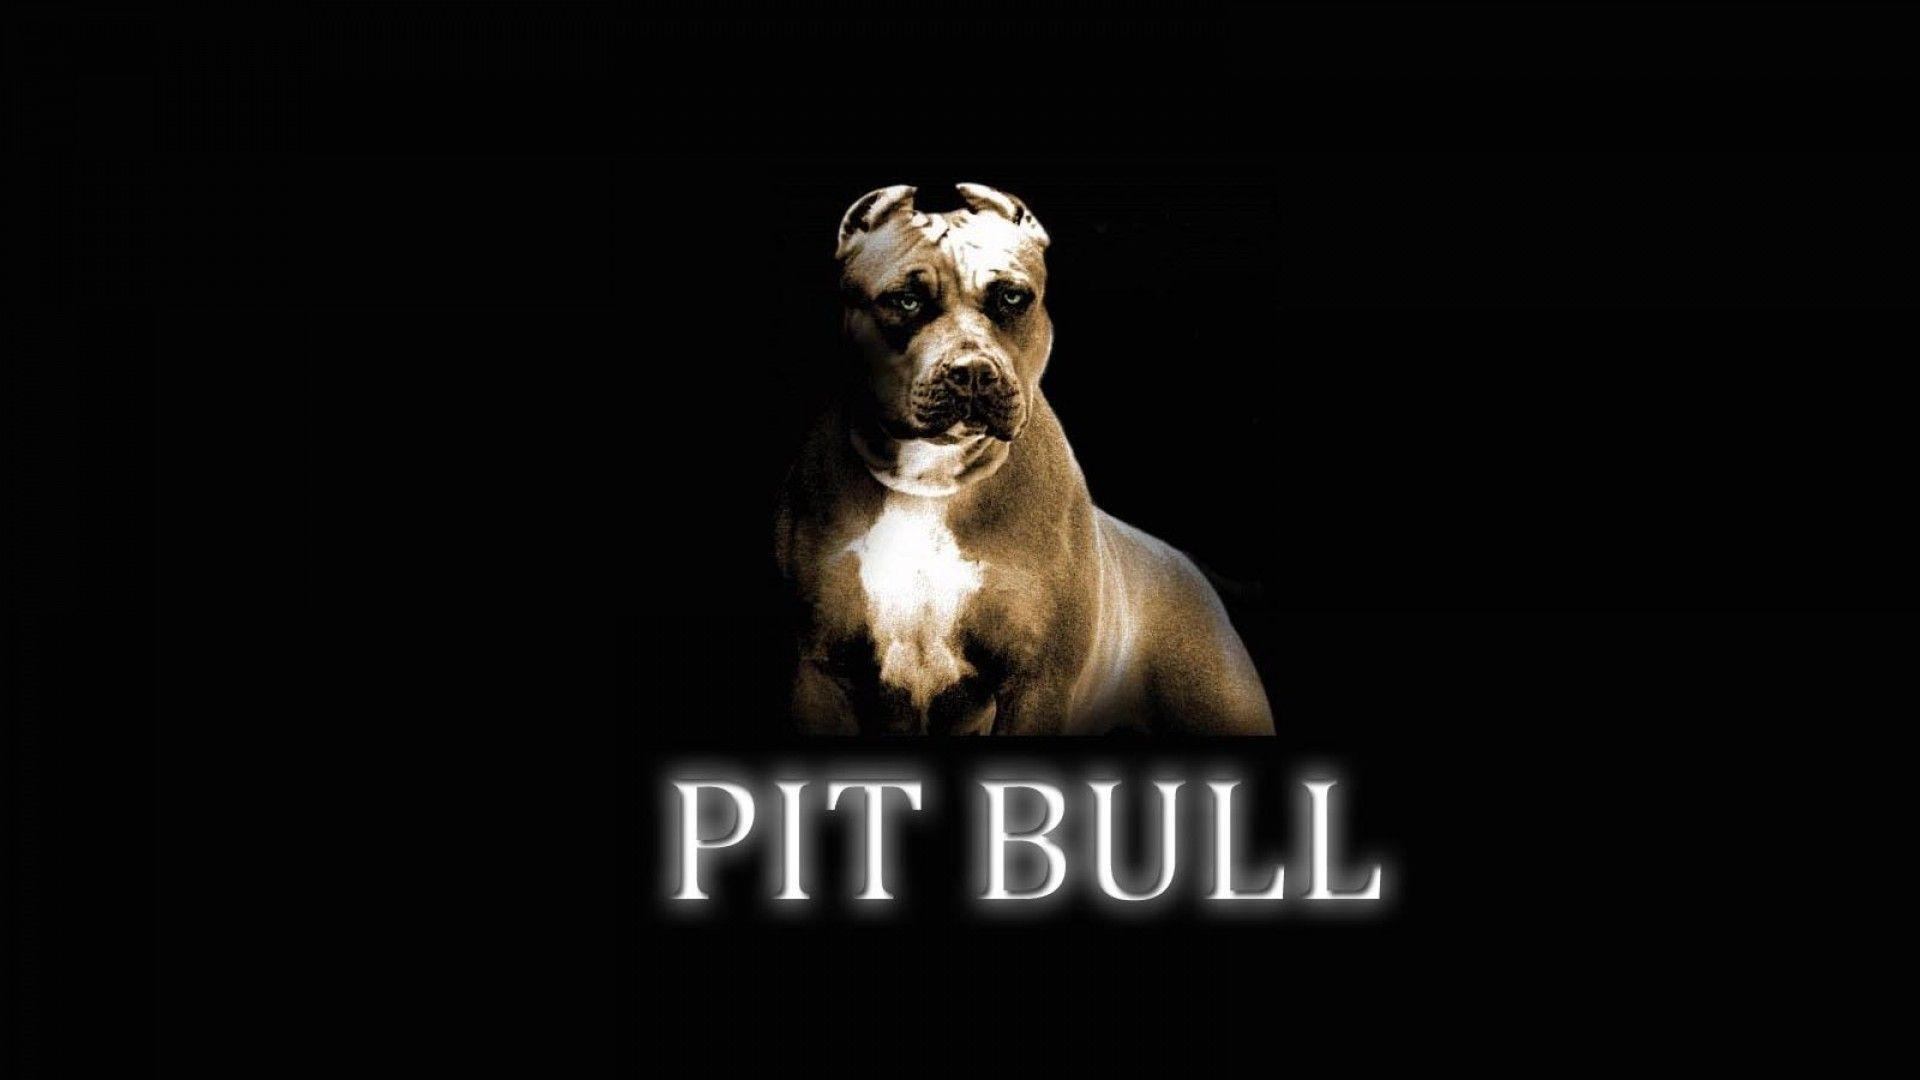 pitbull dogs wallpapers wallpaper cave